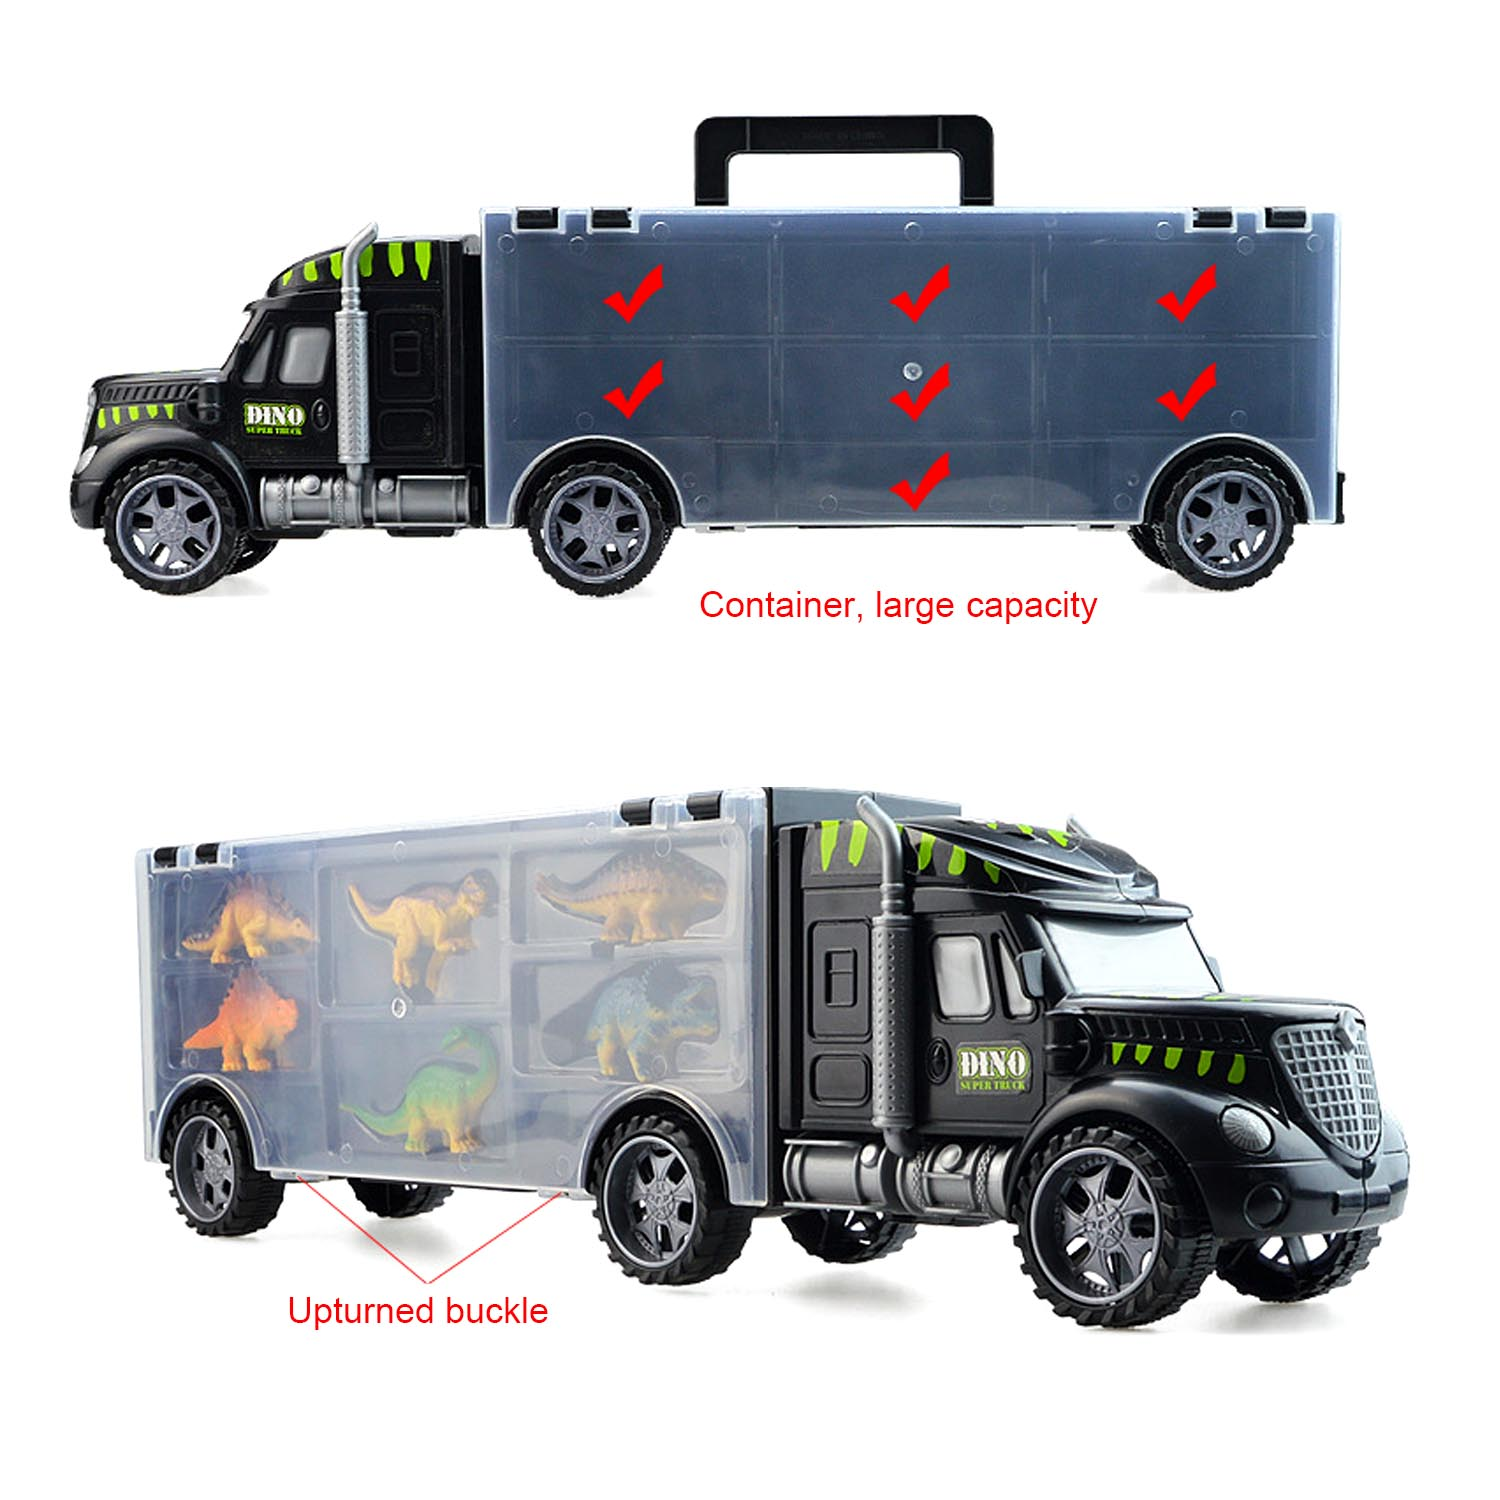 Kids 1PCS Dinosaur Transport Carrier Truck Vehicle Car With 6pcs Plastic Dinosaur Animal Models Transport Traffic Toy